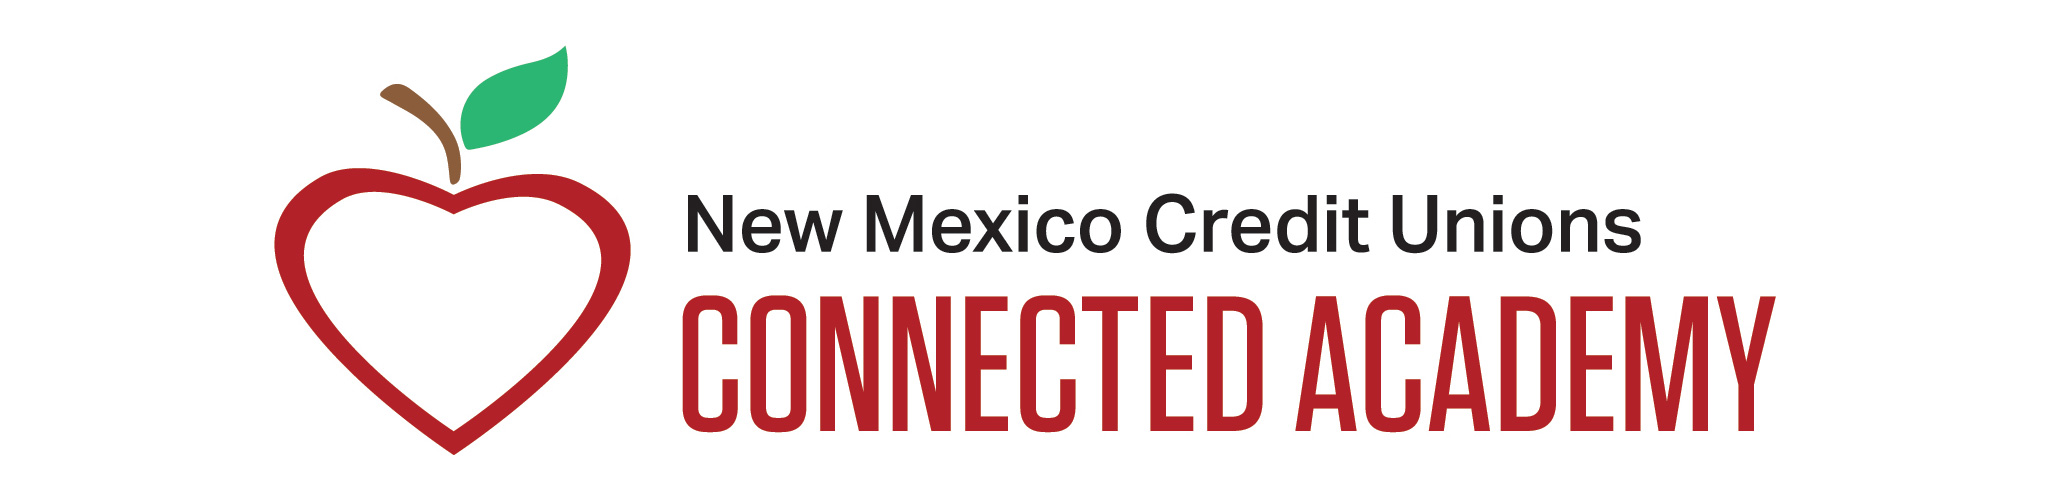 New Mexico Credit Unions Connected Academy Logo